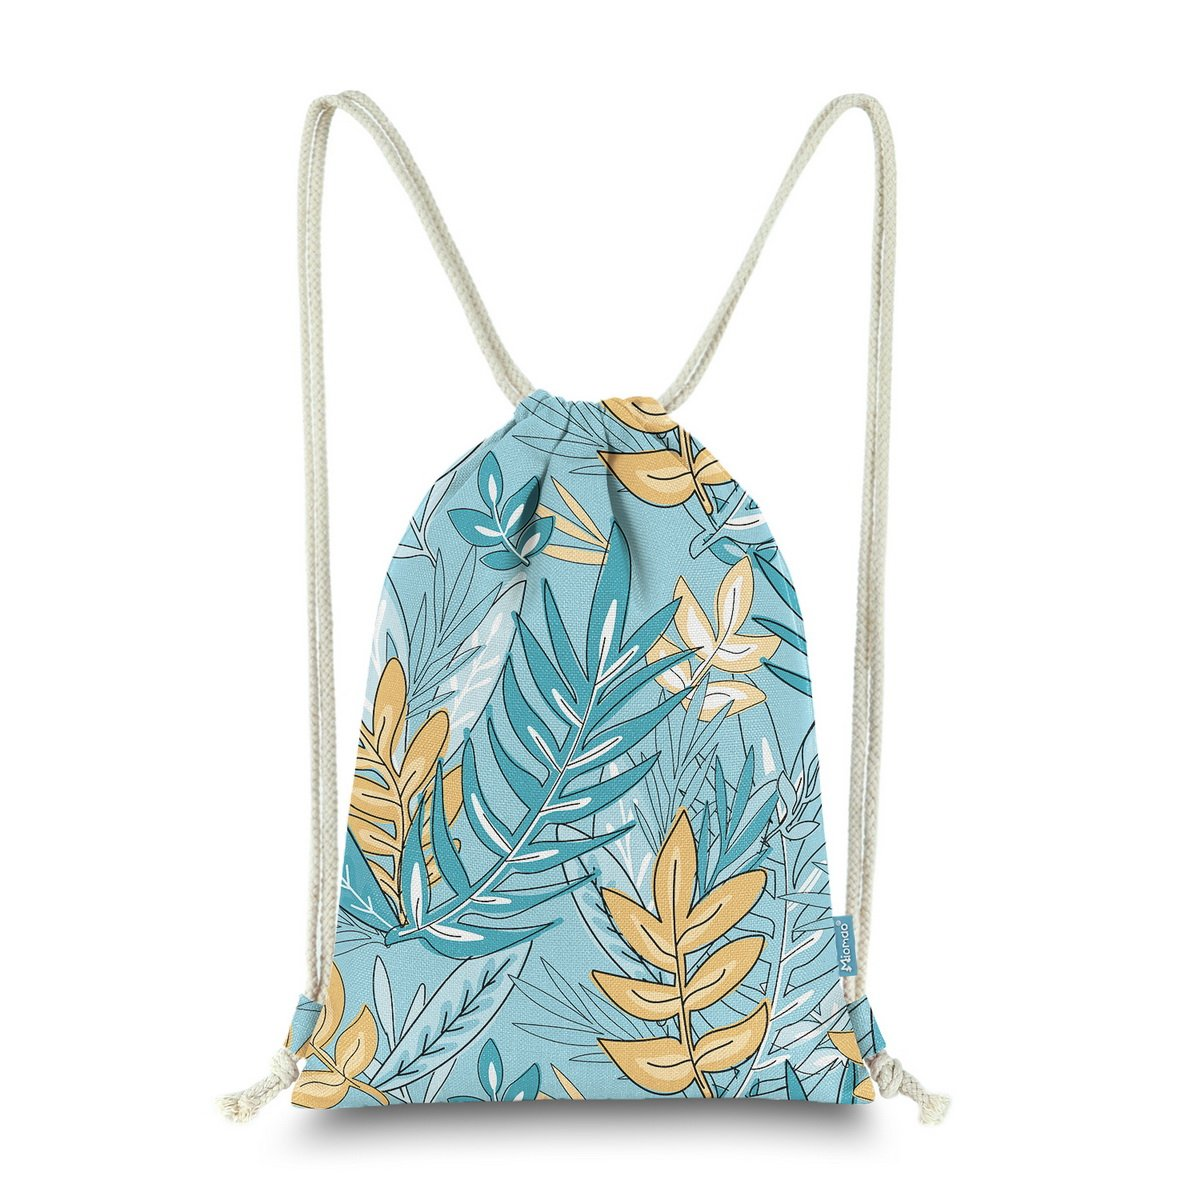 Miomao Drawstring Backpack Bag Gym Sackpack Graffiti Leaves Style String Bag Sinch Sack Sport Cinch Pack, Canal Blue